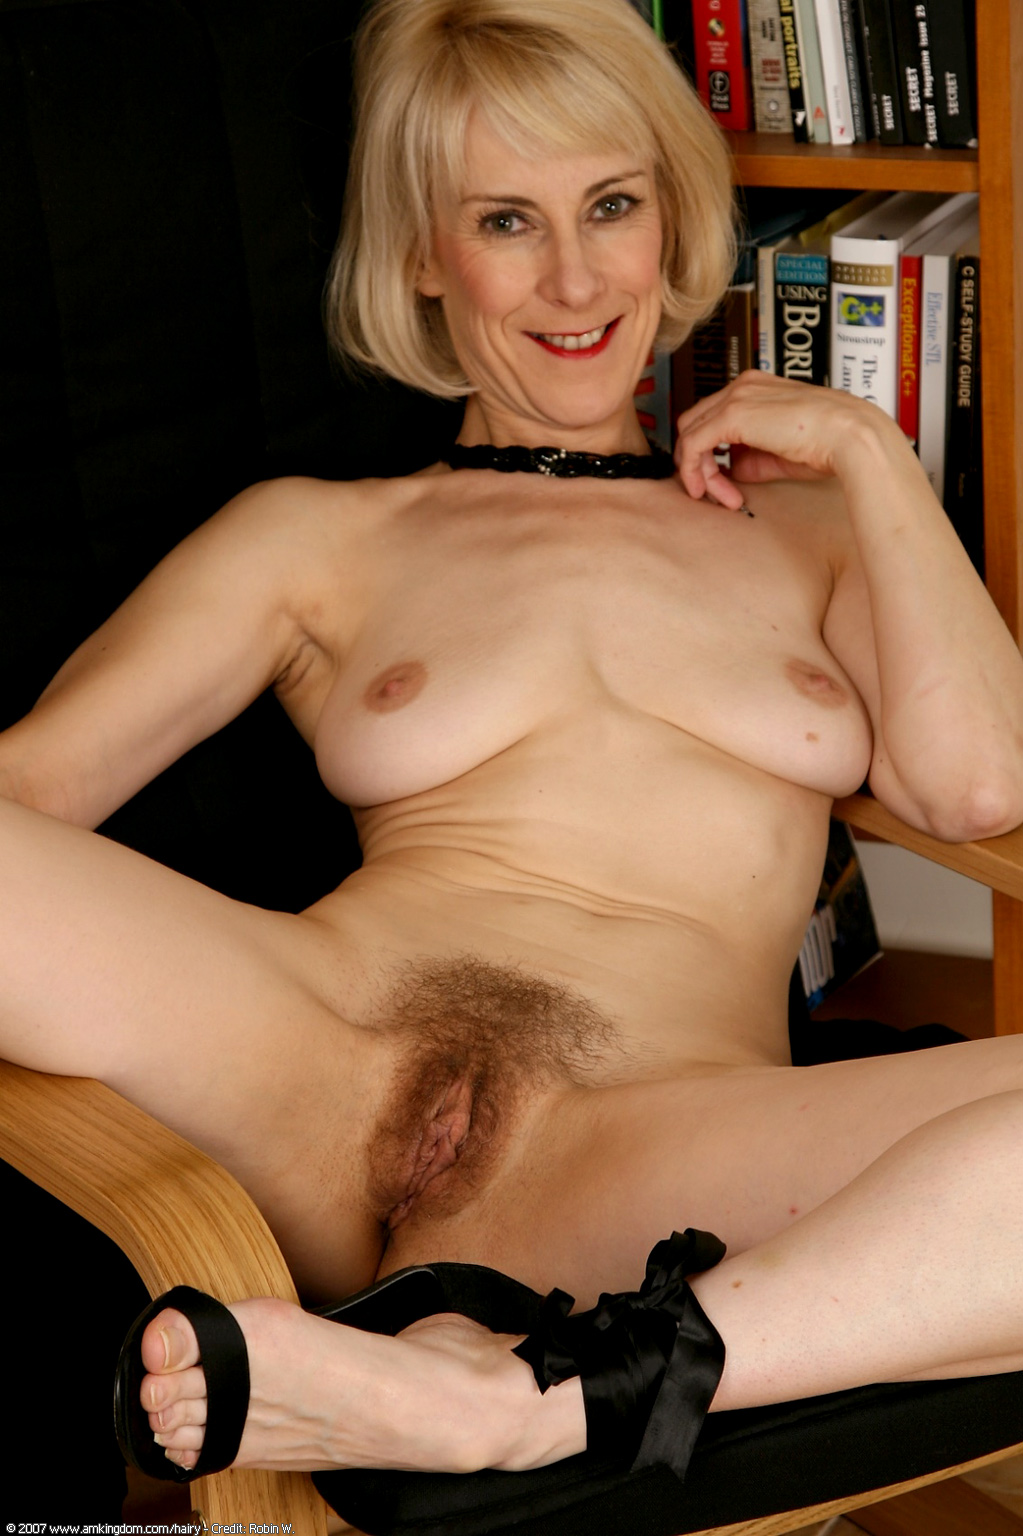 Hazel may milf galleries